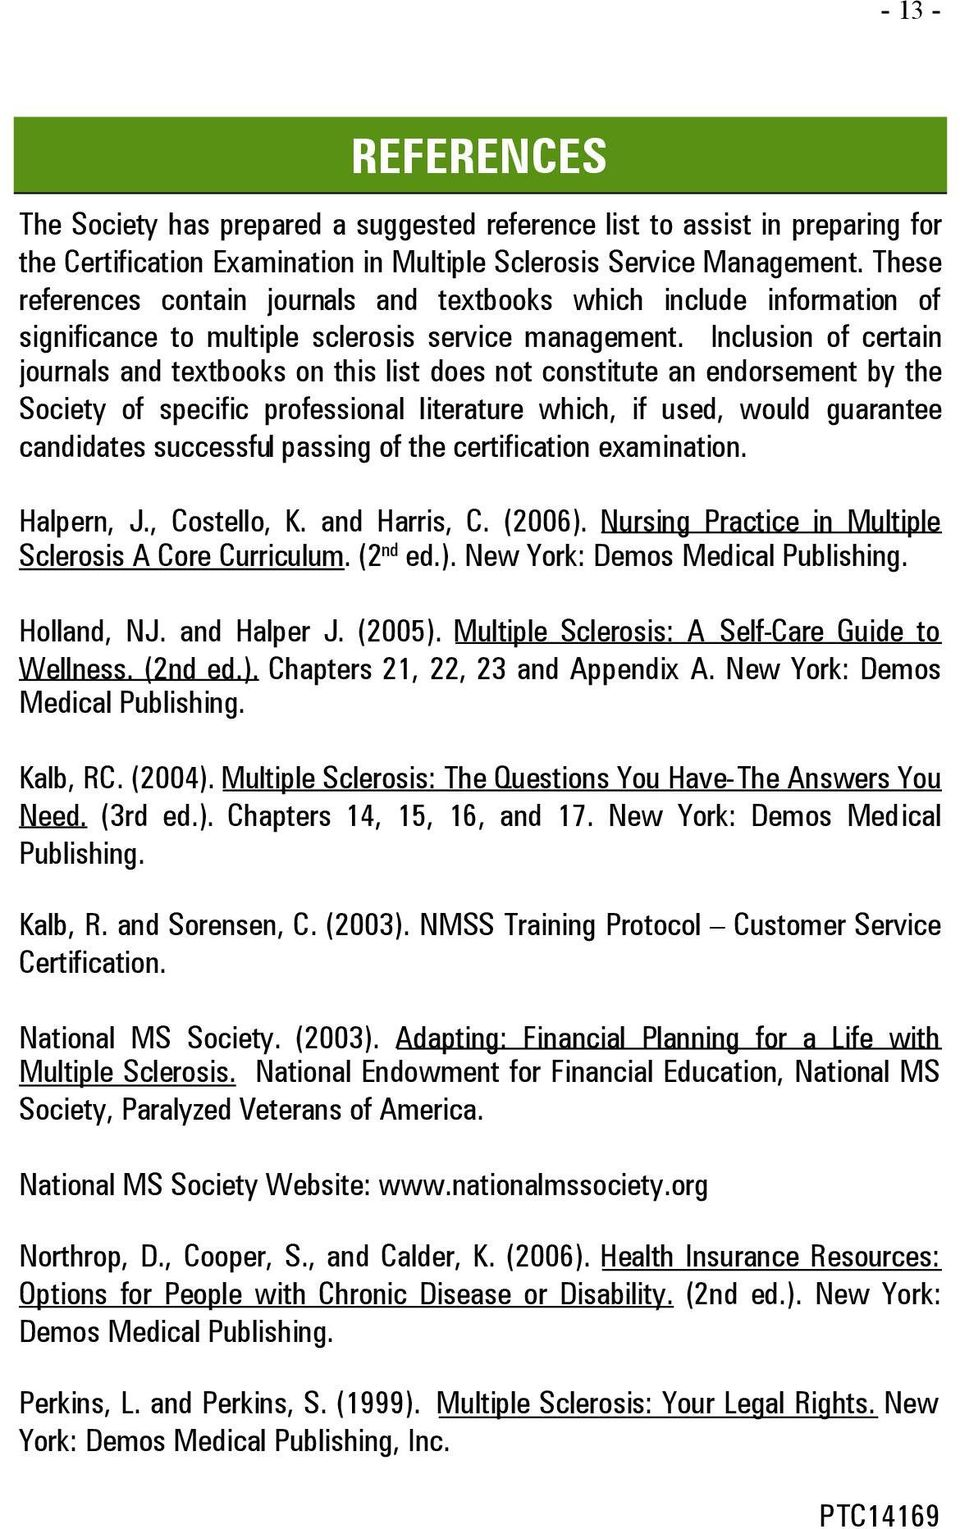 Inclusion of certain journals and textbooks on this list does not constitute an endorsement by the Society of specific professional literature which, if used, would guarantee candidates successful